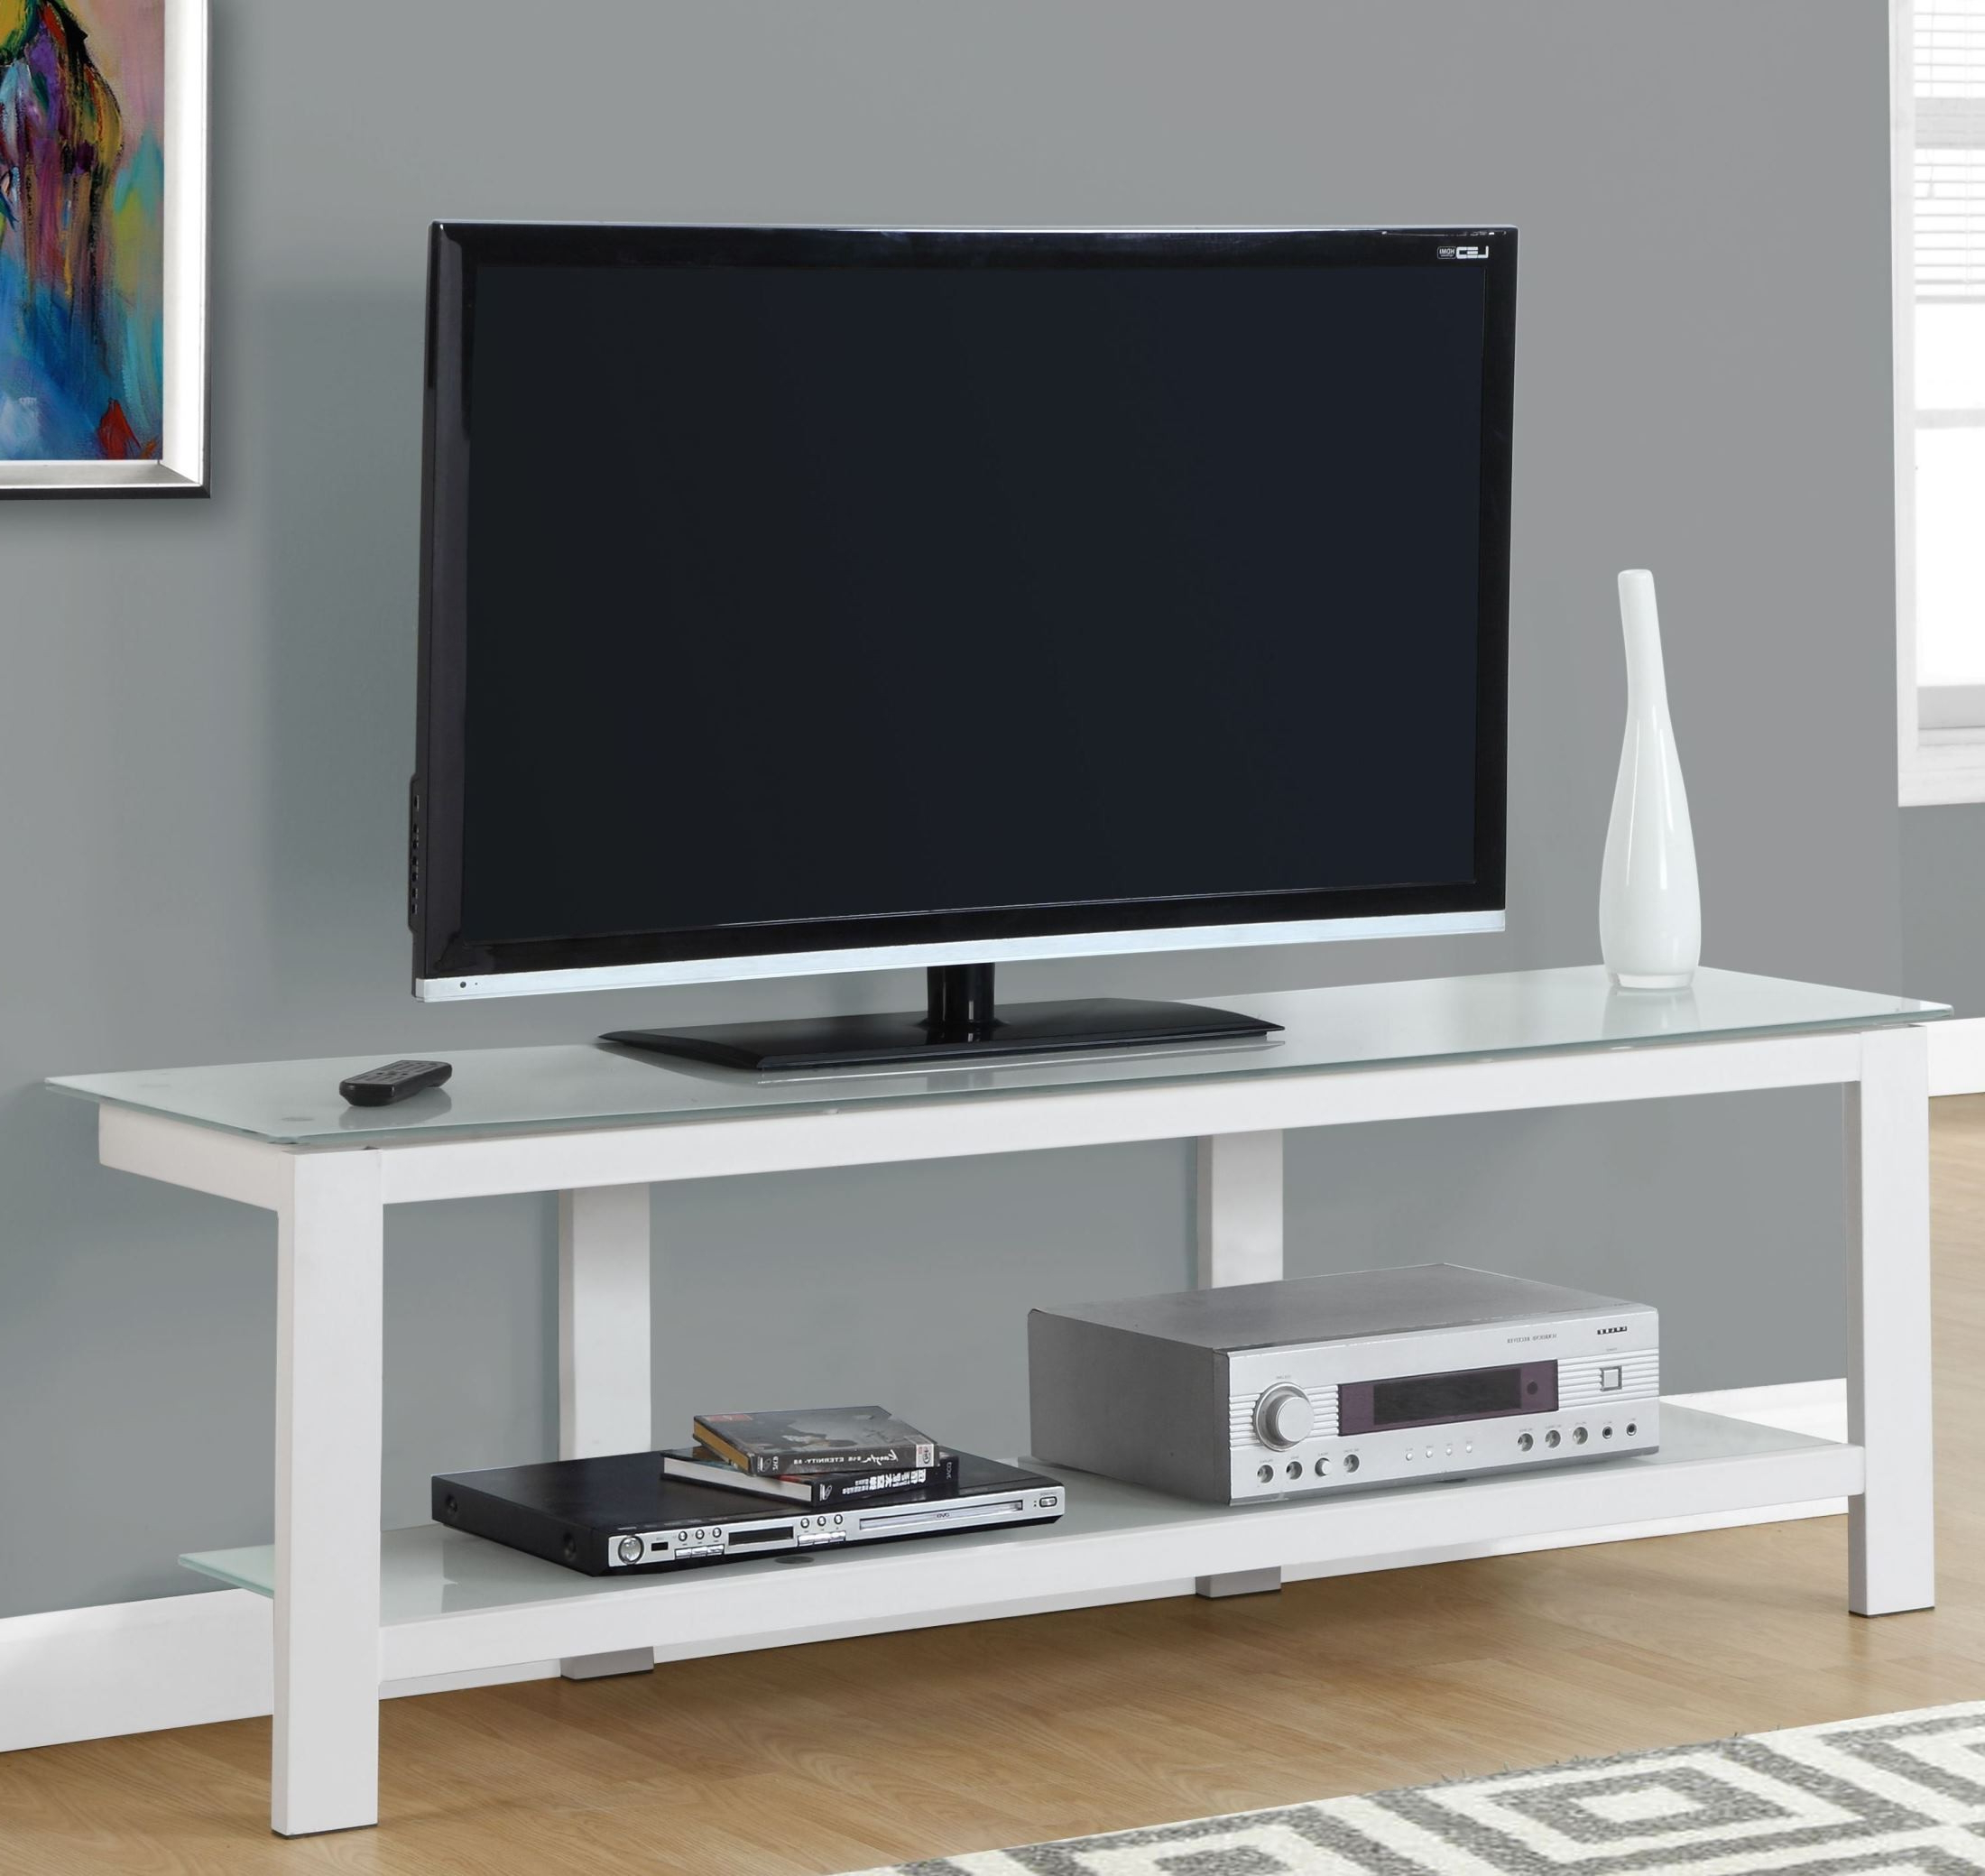 """White Frosted Tempered Glass 60"""" Tv Stand From Monarch Regarding Glass Shelves Tv Stands For Tvs Up To 60"""" (View 4 of 20)"""